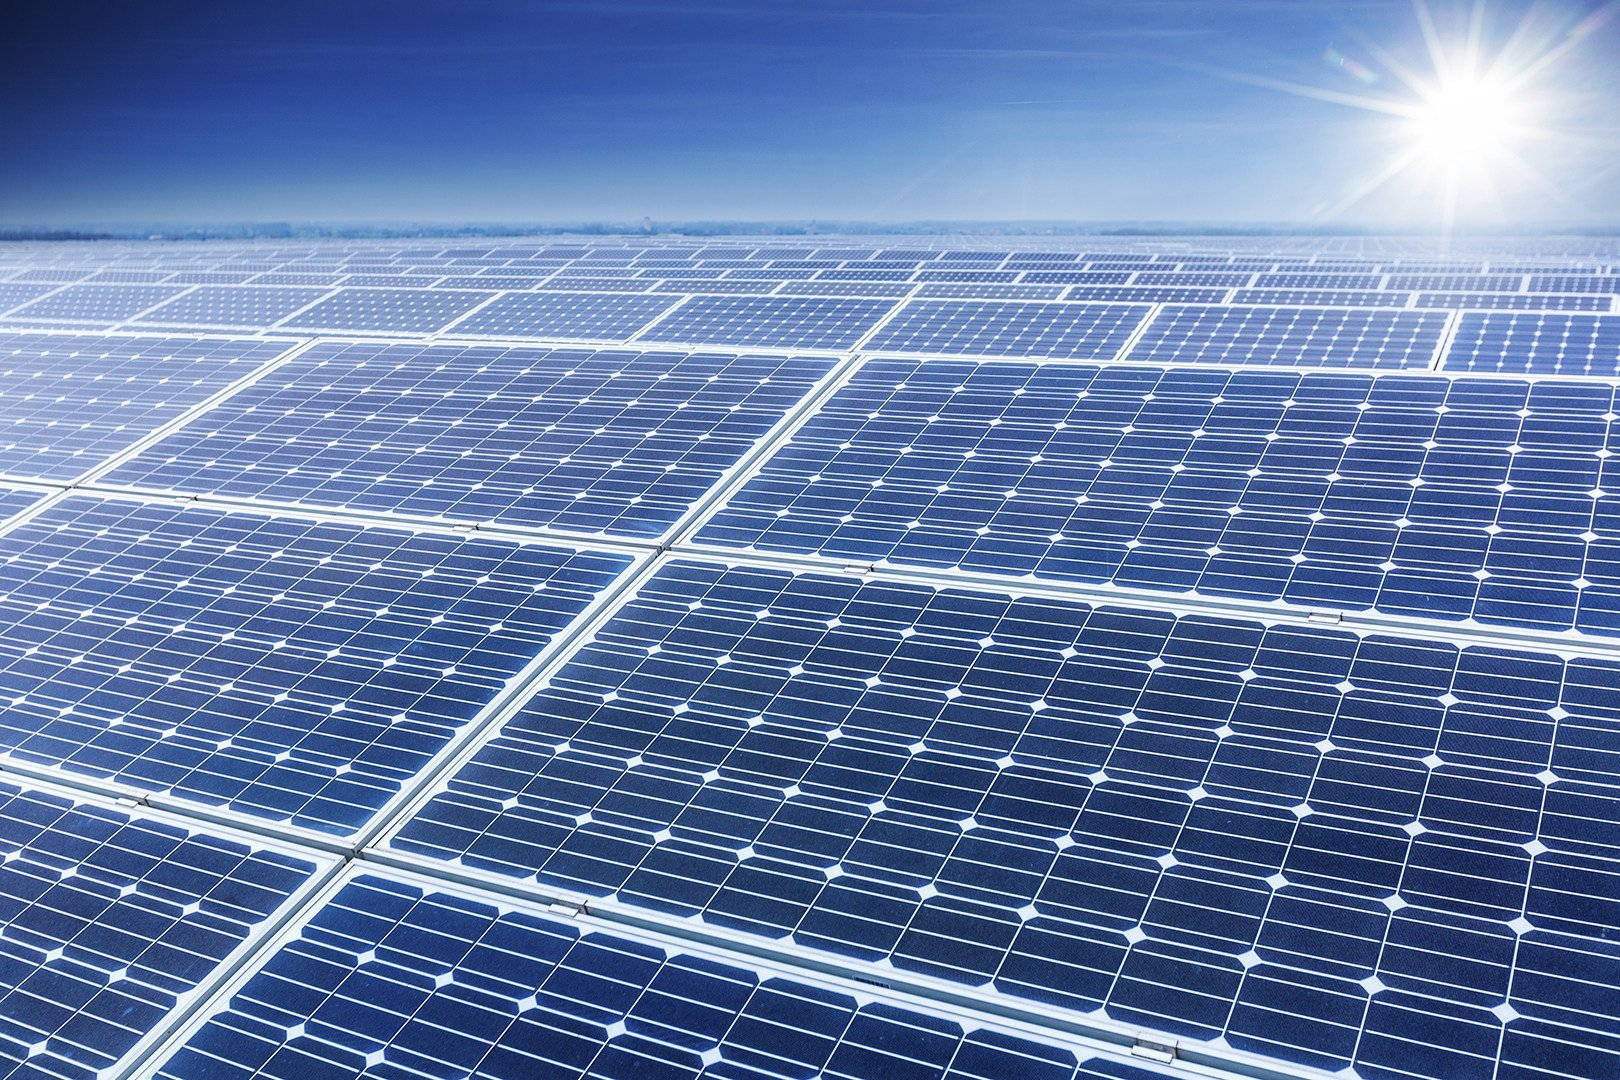 Fayetteville Solar Project Designed to Save City $6 Million